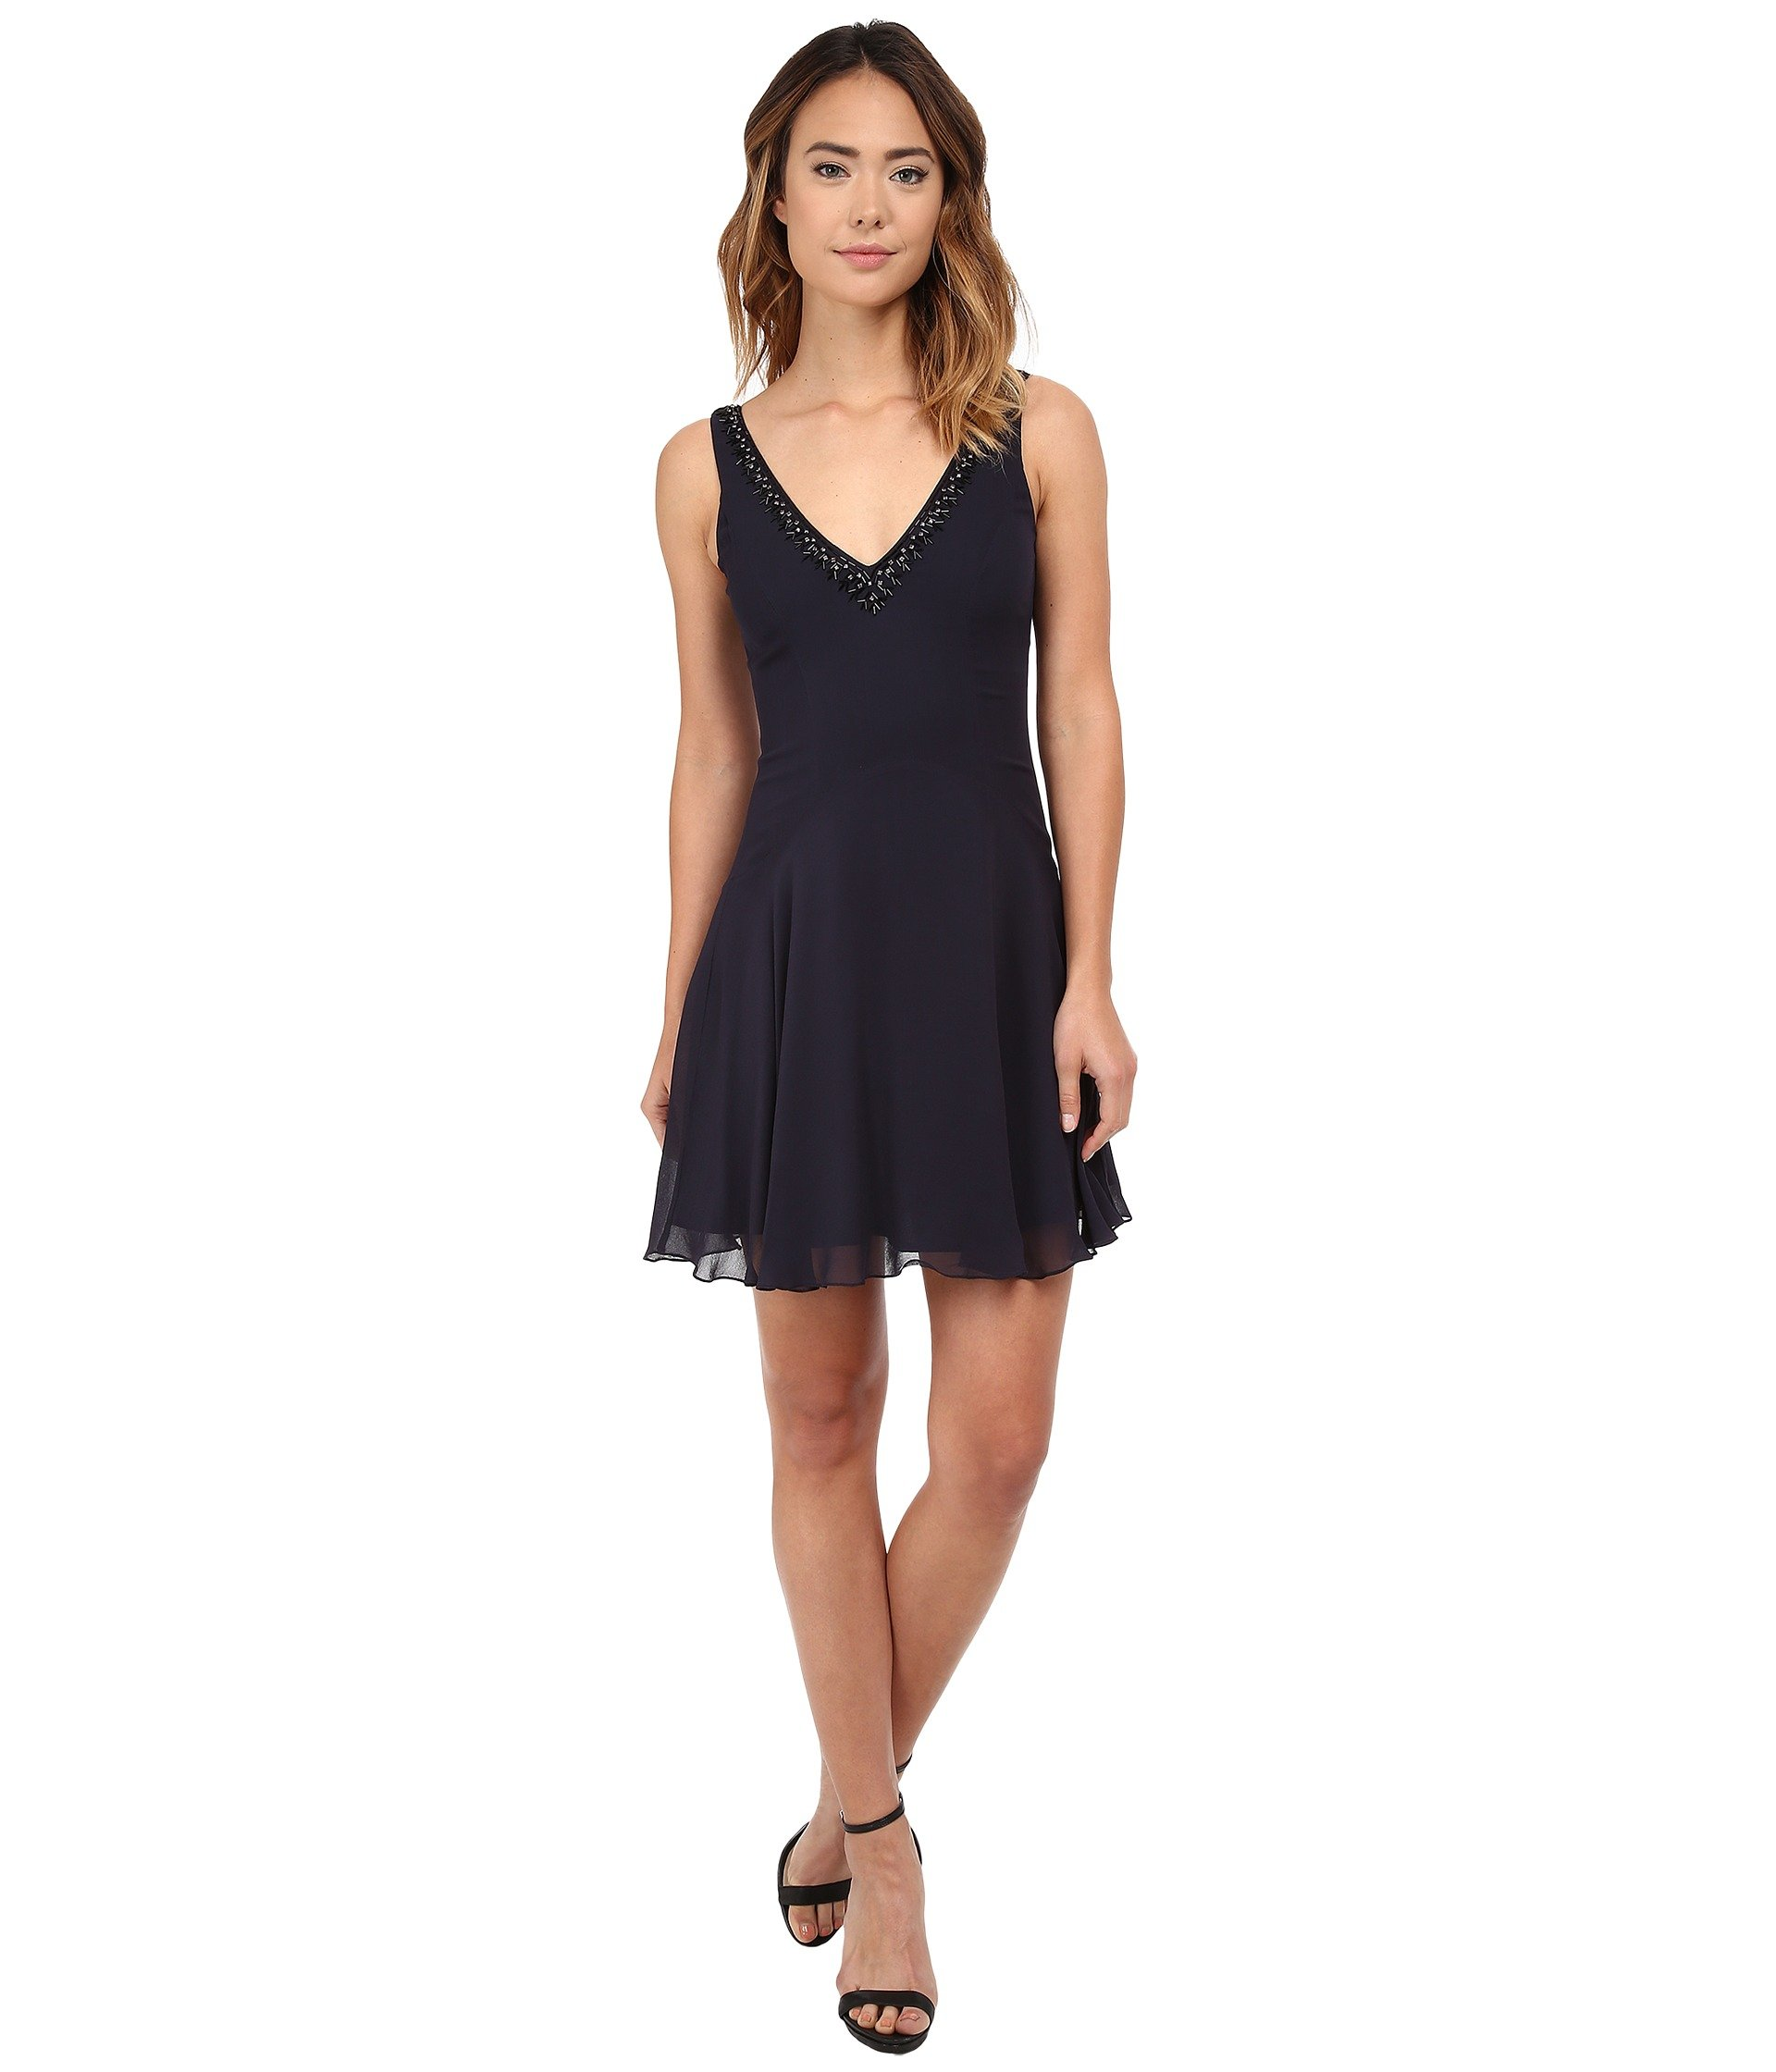 French connection colorblock dress